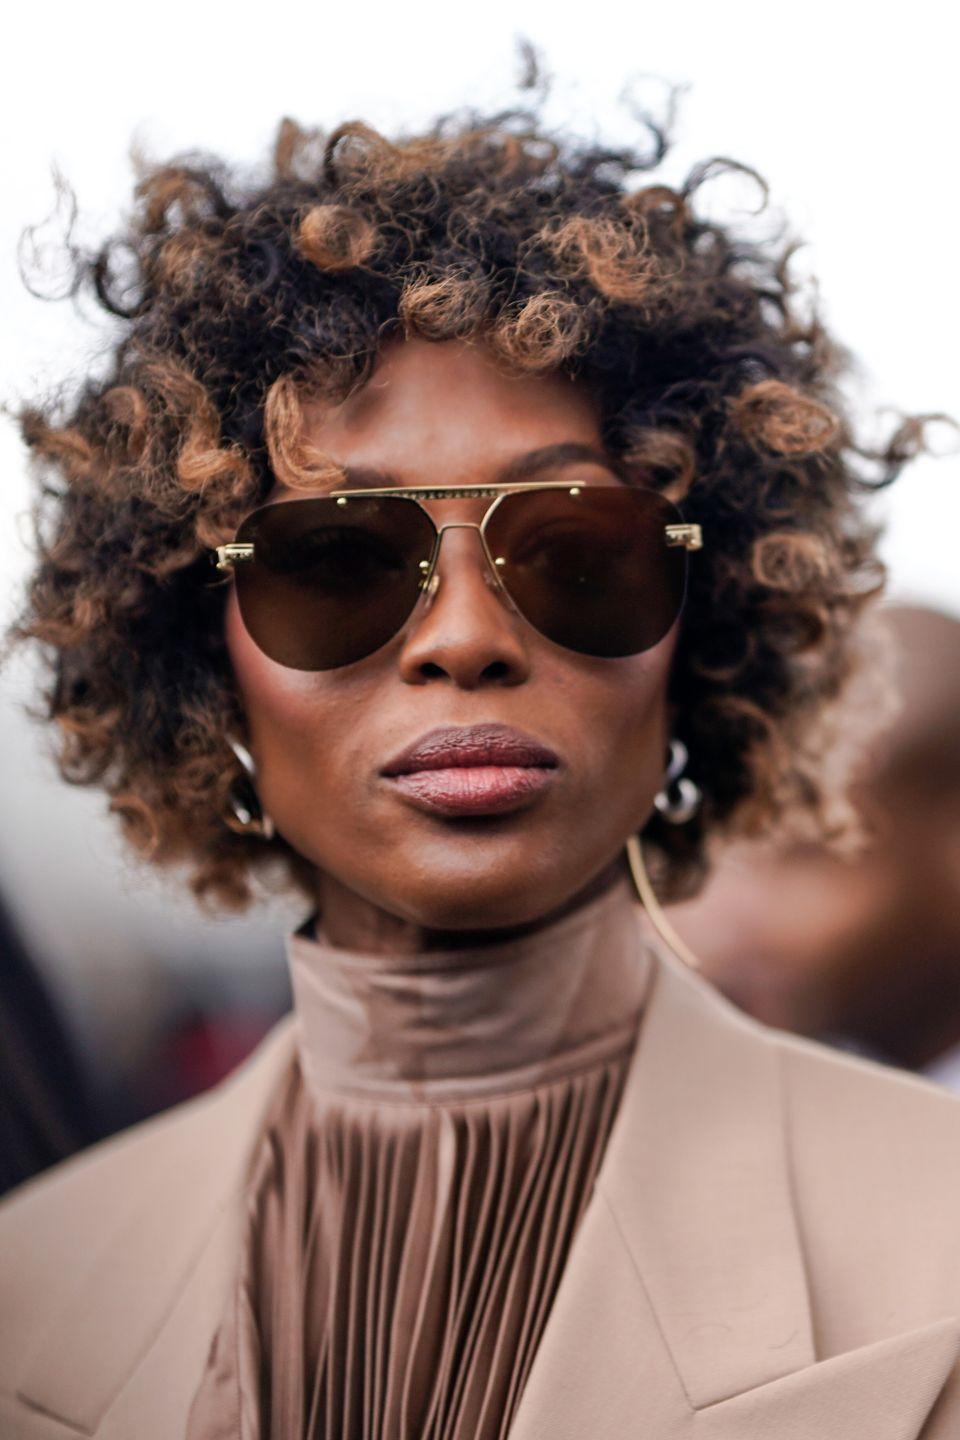 <p>The queen of the runway, Naomi Campbell, swapped her signature poker straight hair for some seriously stunning caramel curls. The supermodel debuted her curly new look at Paris Men's Fashion Week where she attended the AW19 show.</p>